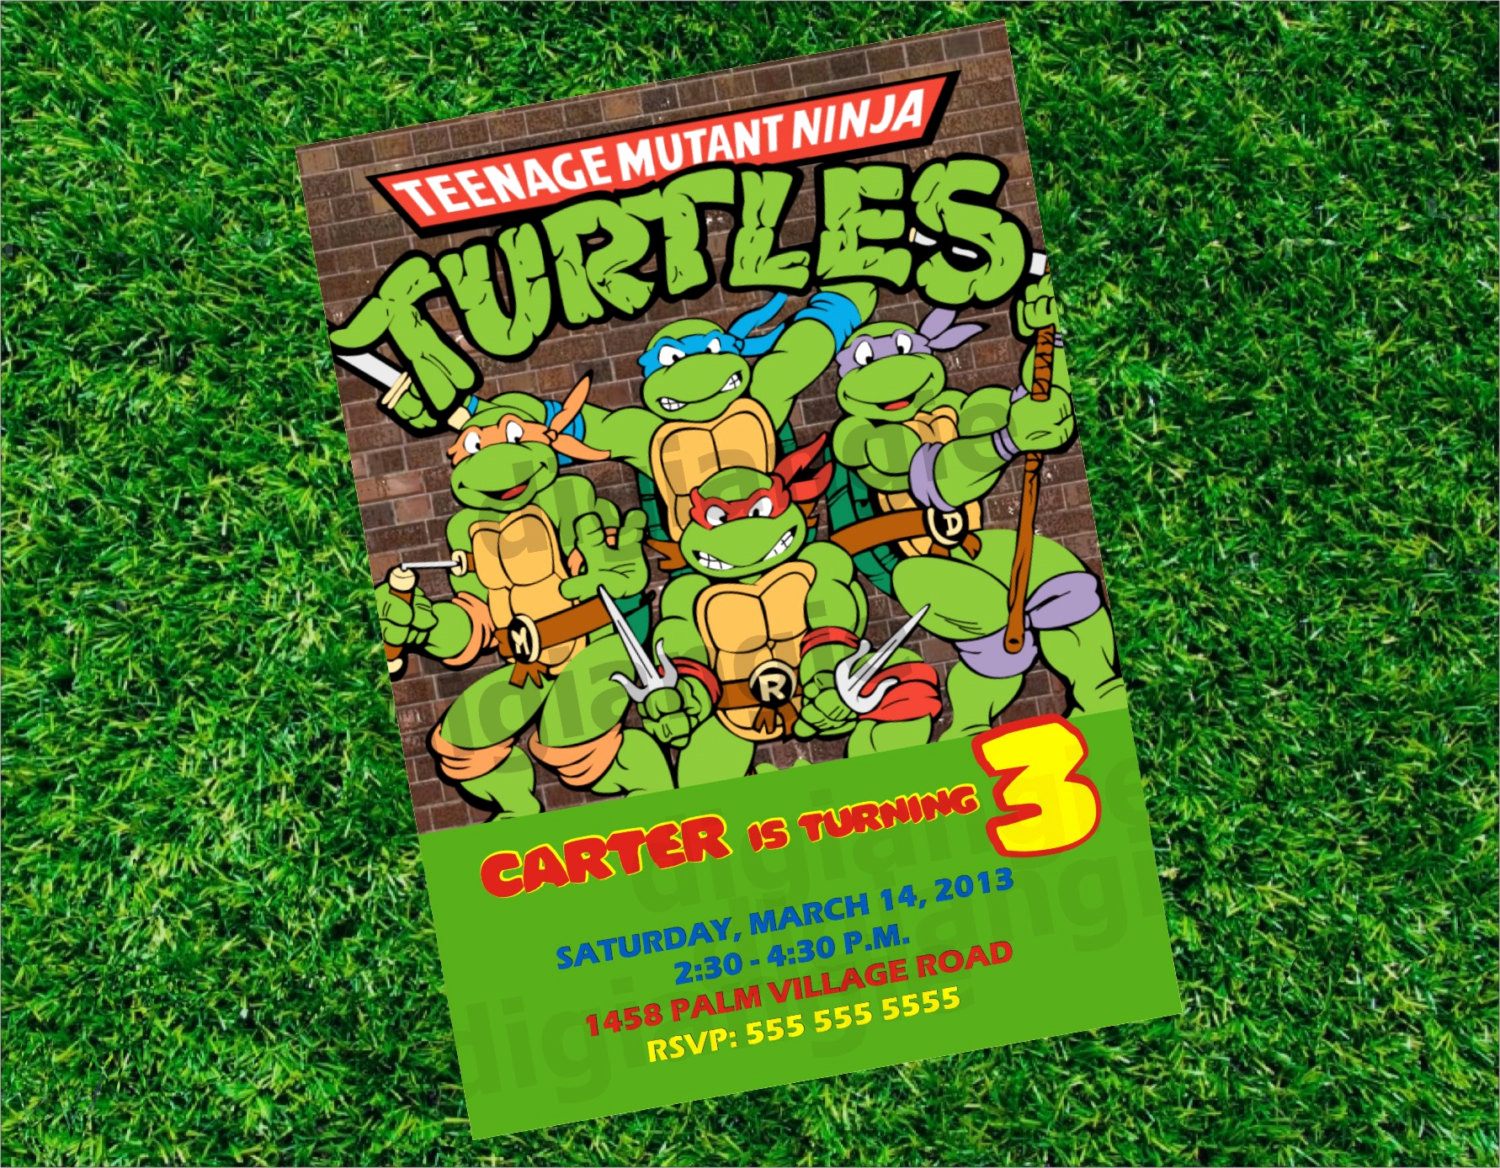 Free Ninja Turtle Invitation Templates Awesome Ninja Turtle Birthday Party Invitations